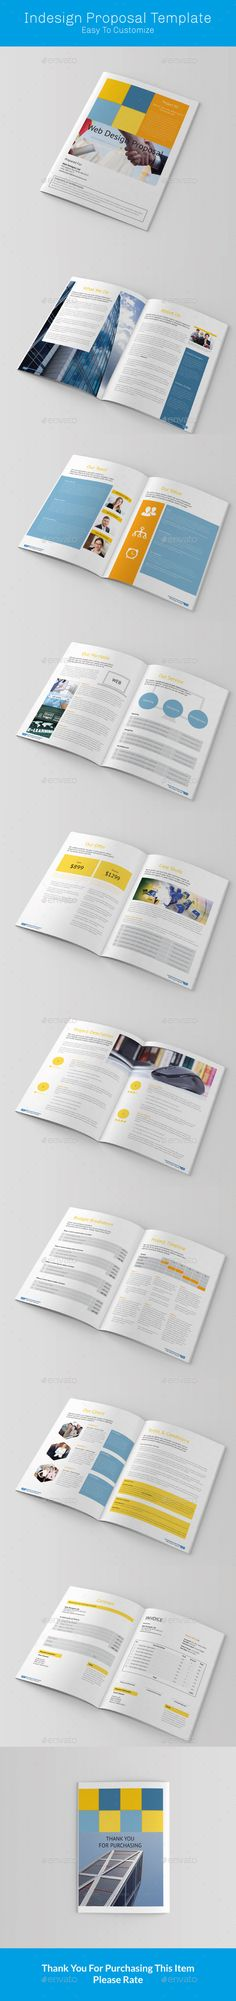 Business Project Proposal Template Indesign Indd Design Download